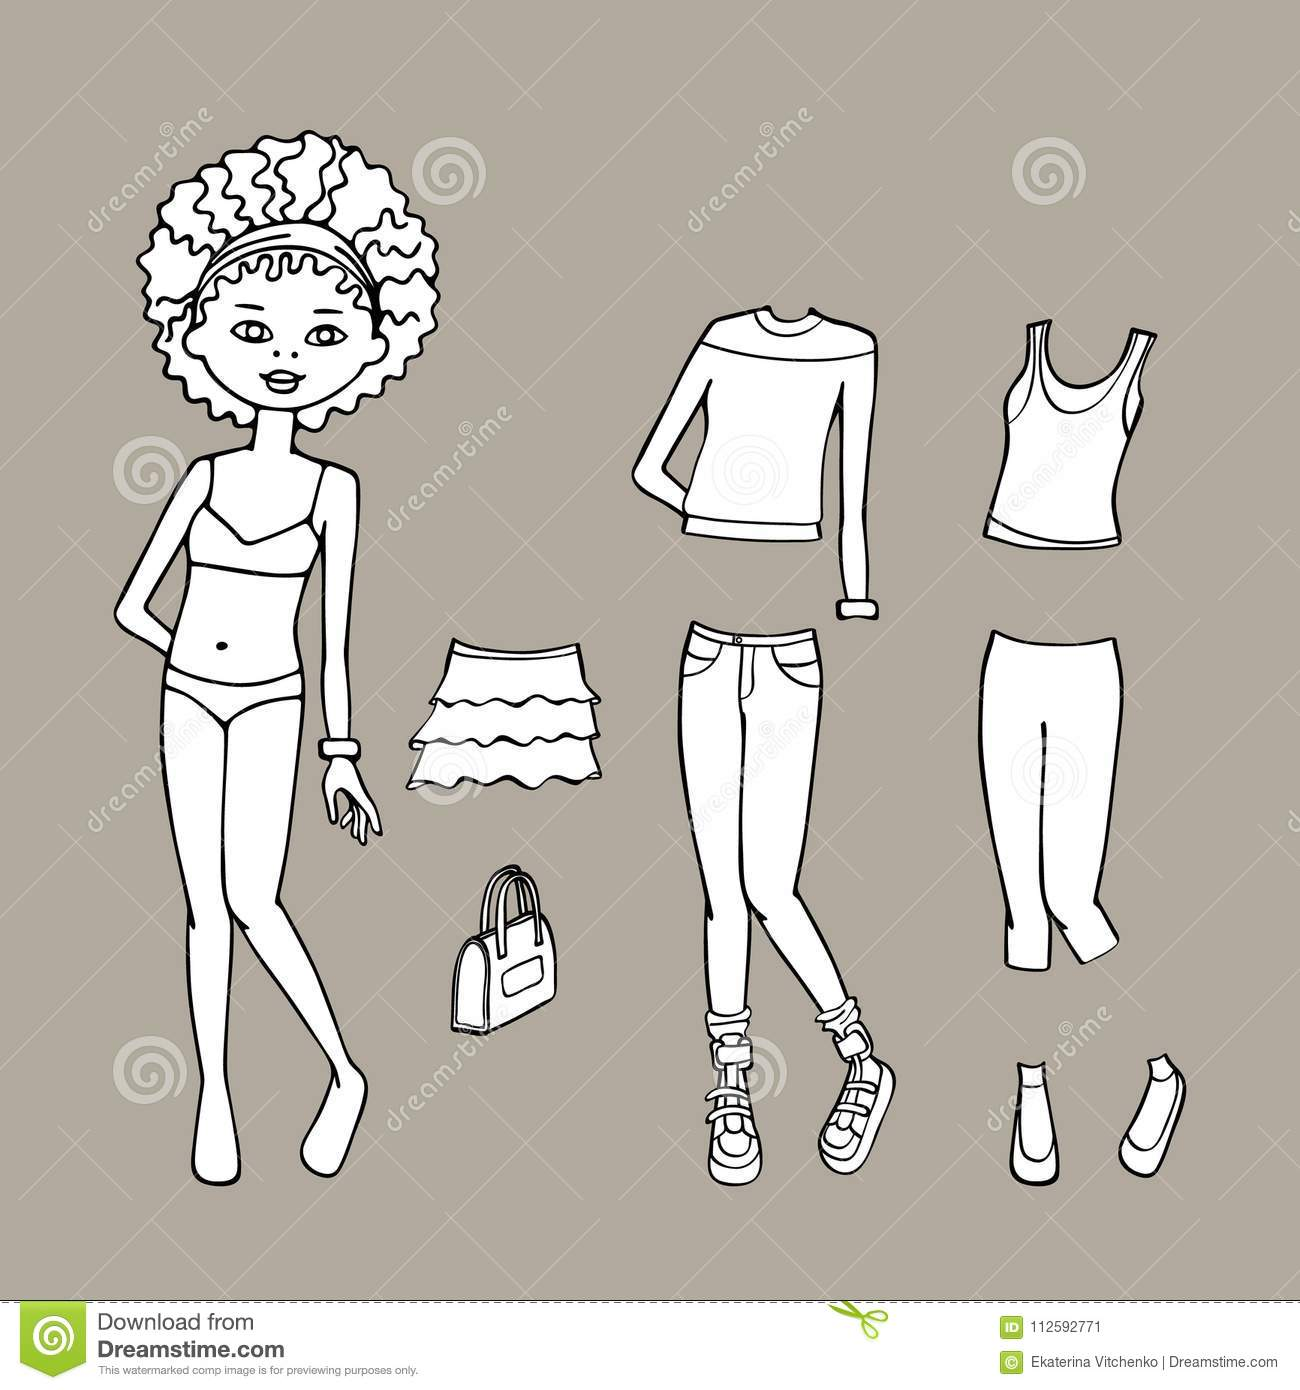 Black & White Cute Dress Up Paper Doll. Body Template, Clothing And ...